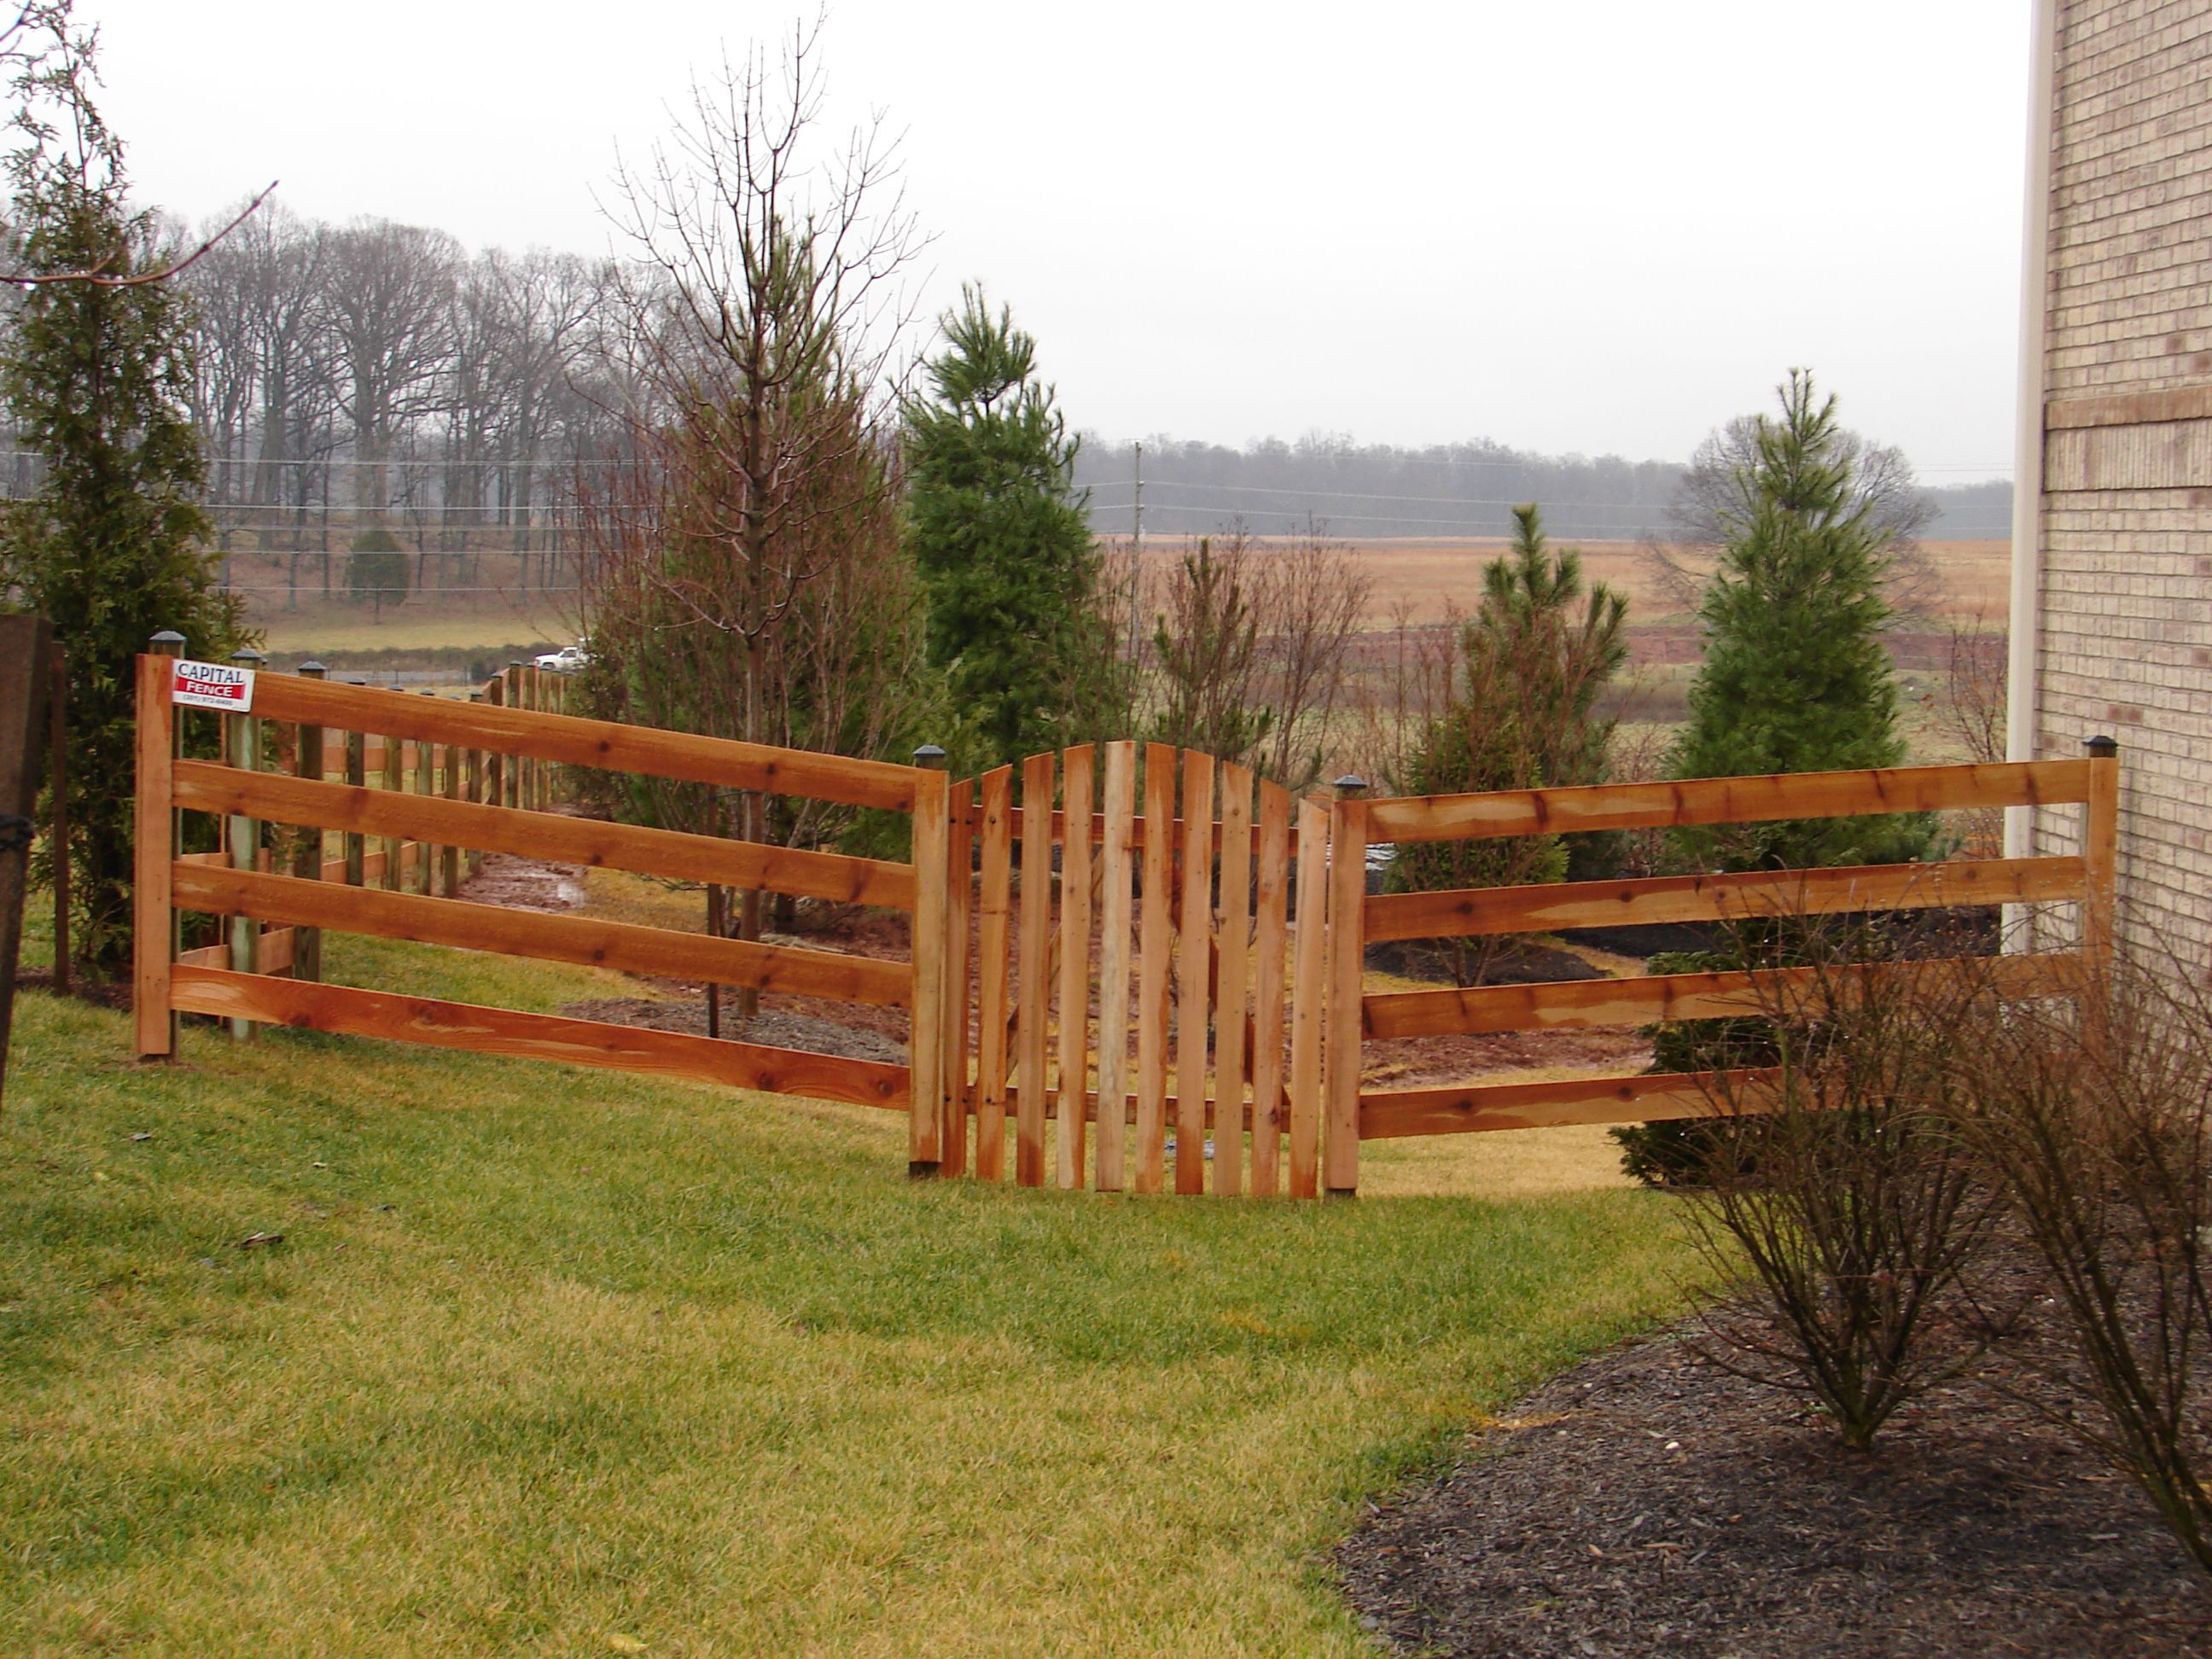 4 Board Paddock Fence With Single Gate Split Rail Fence Rail Fence Fence